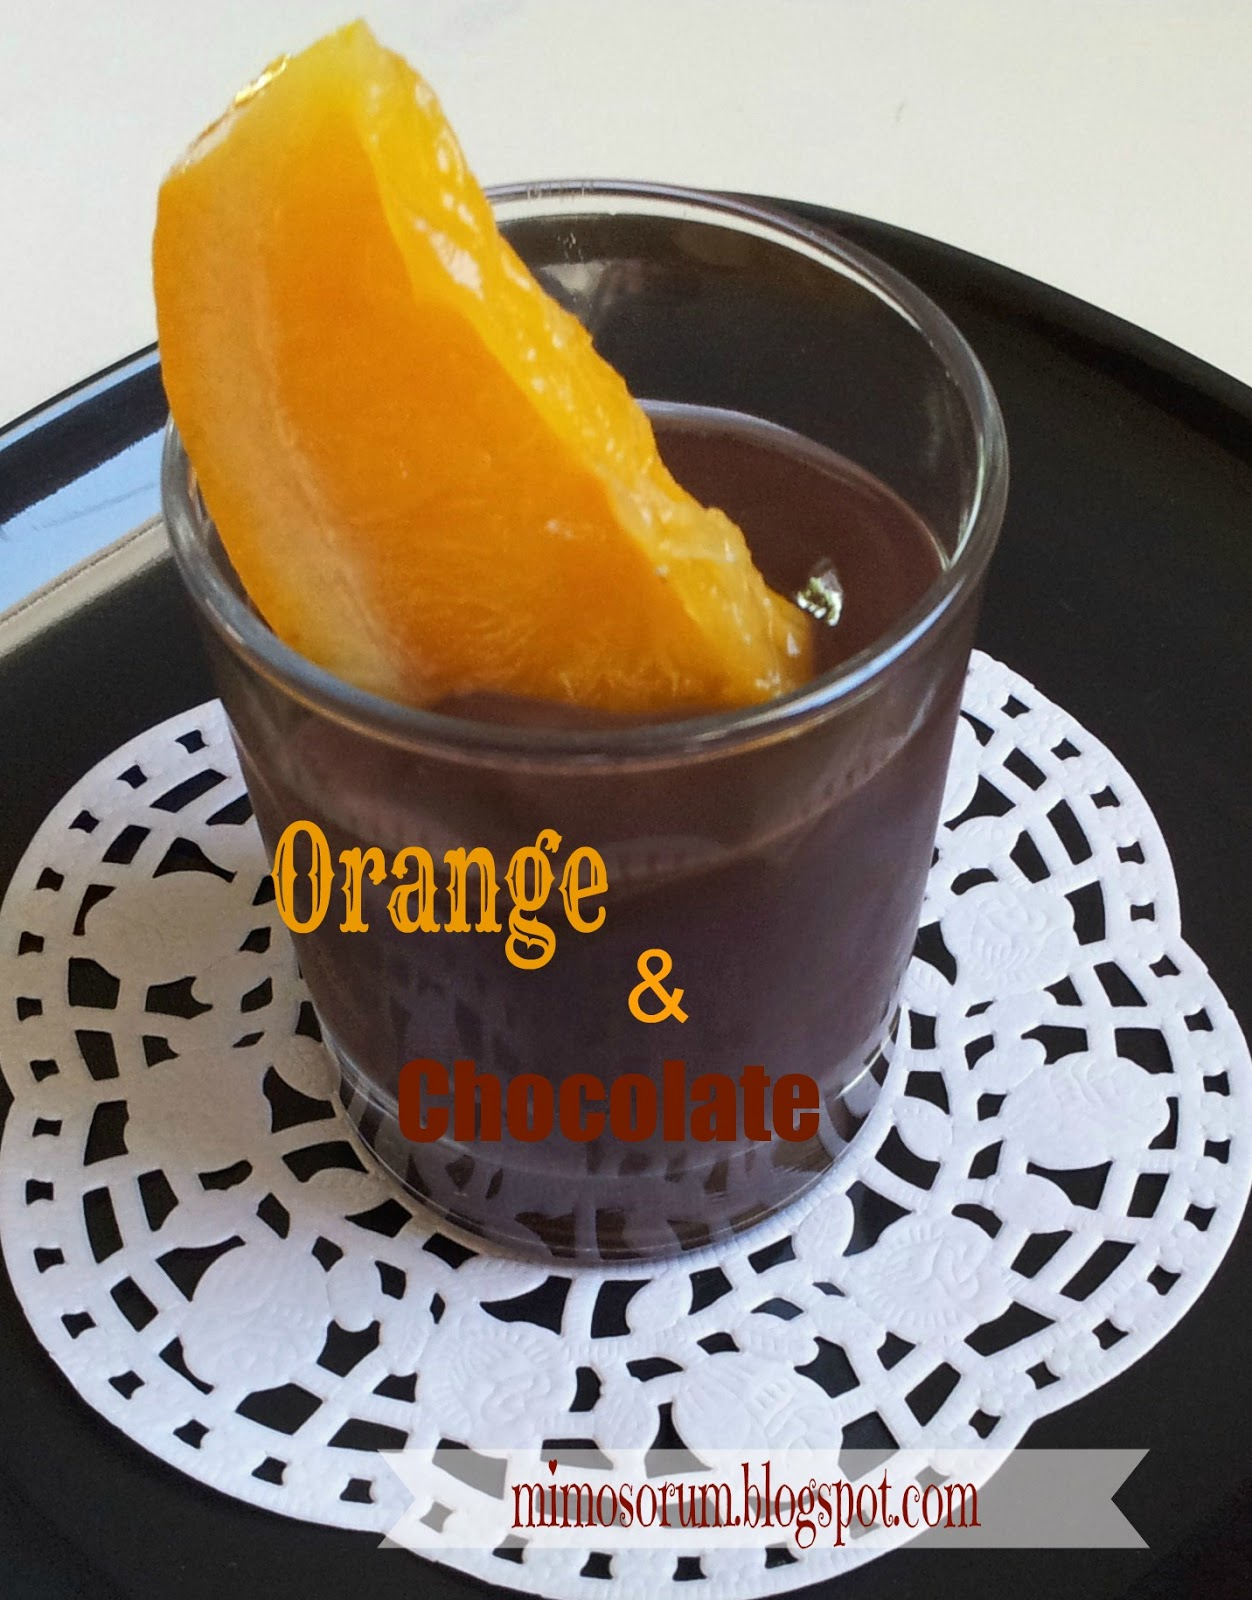 Chocolate Oranges. Mimosorum